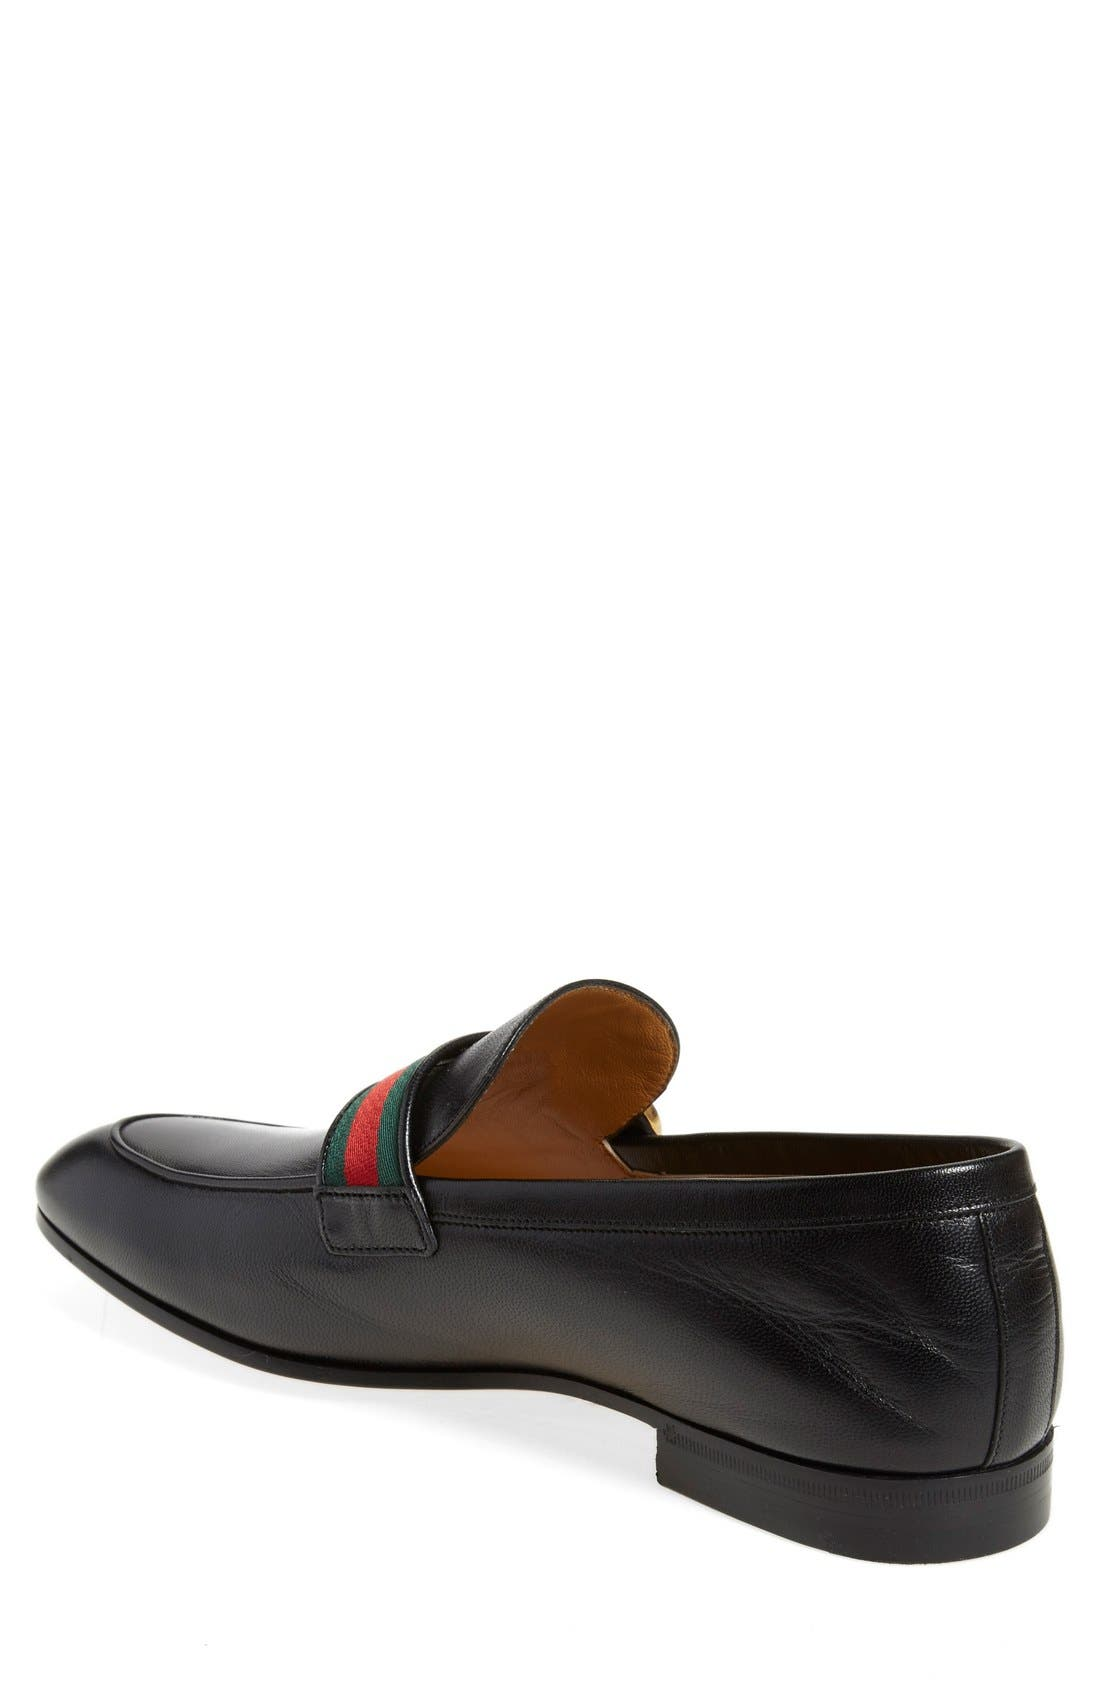 Donnie Bit Loafer,                             Alternate thumbnail 2, color,                             NERO LEATHER